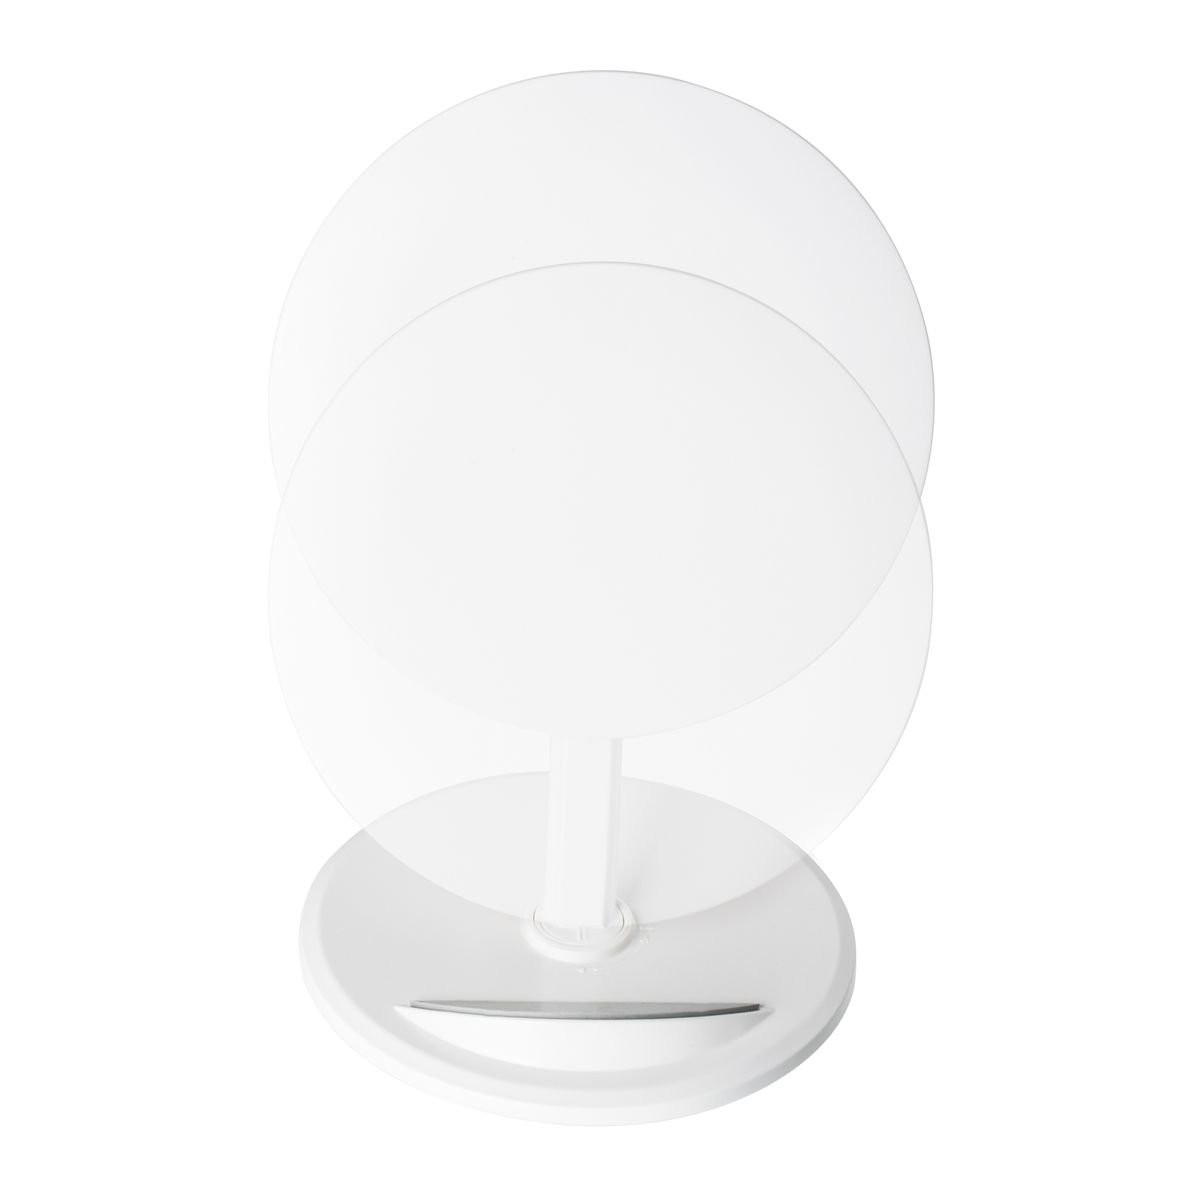 Wireless charging stand REFLECTS-VENICE WHITE, View 2